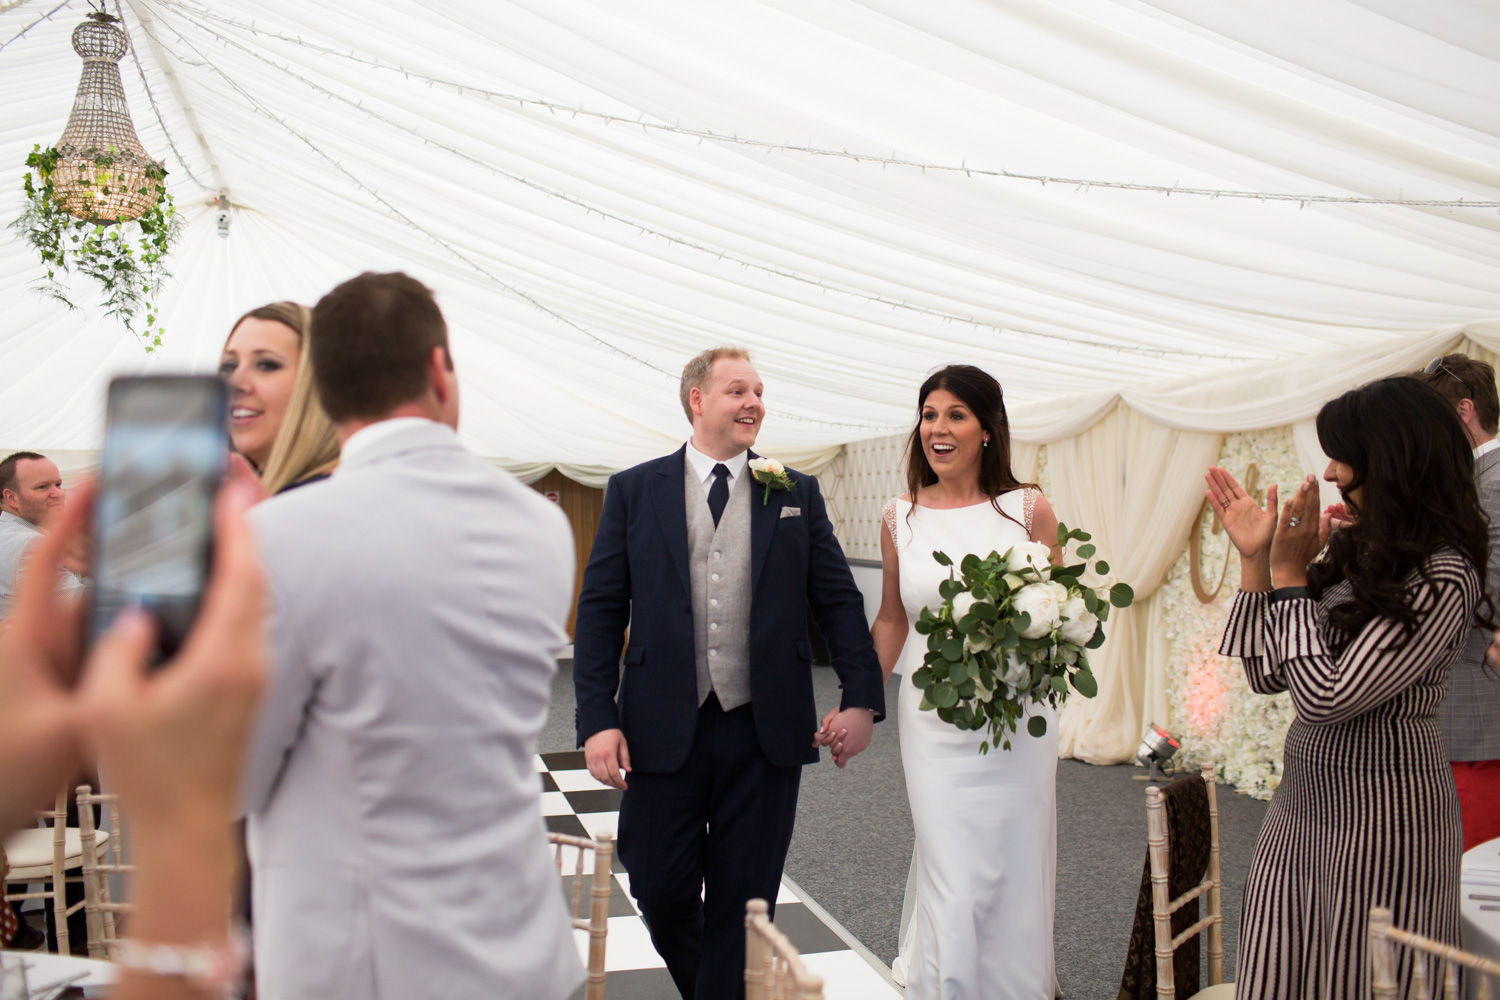 Mark_Barnes_Northern_Ireland_wedding_photographer_Kilmore_House_Wedding_photography_Kilmore_House_wedding_photographer-54.jpg